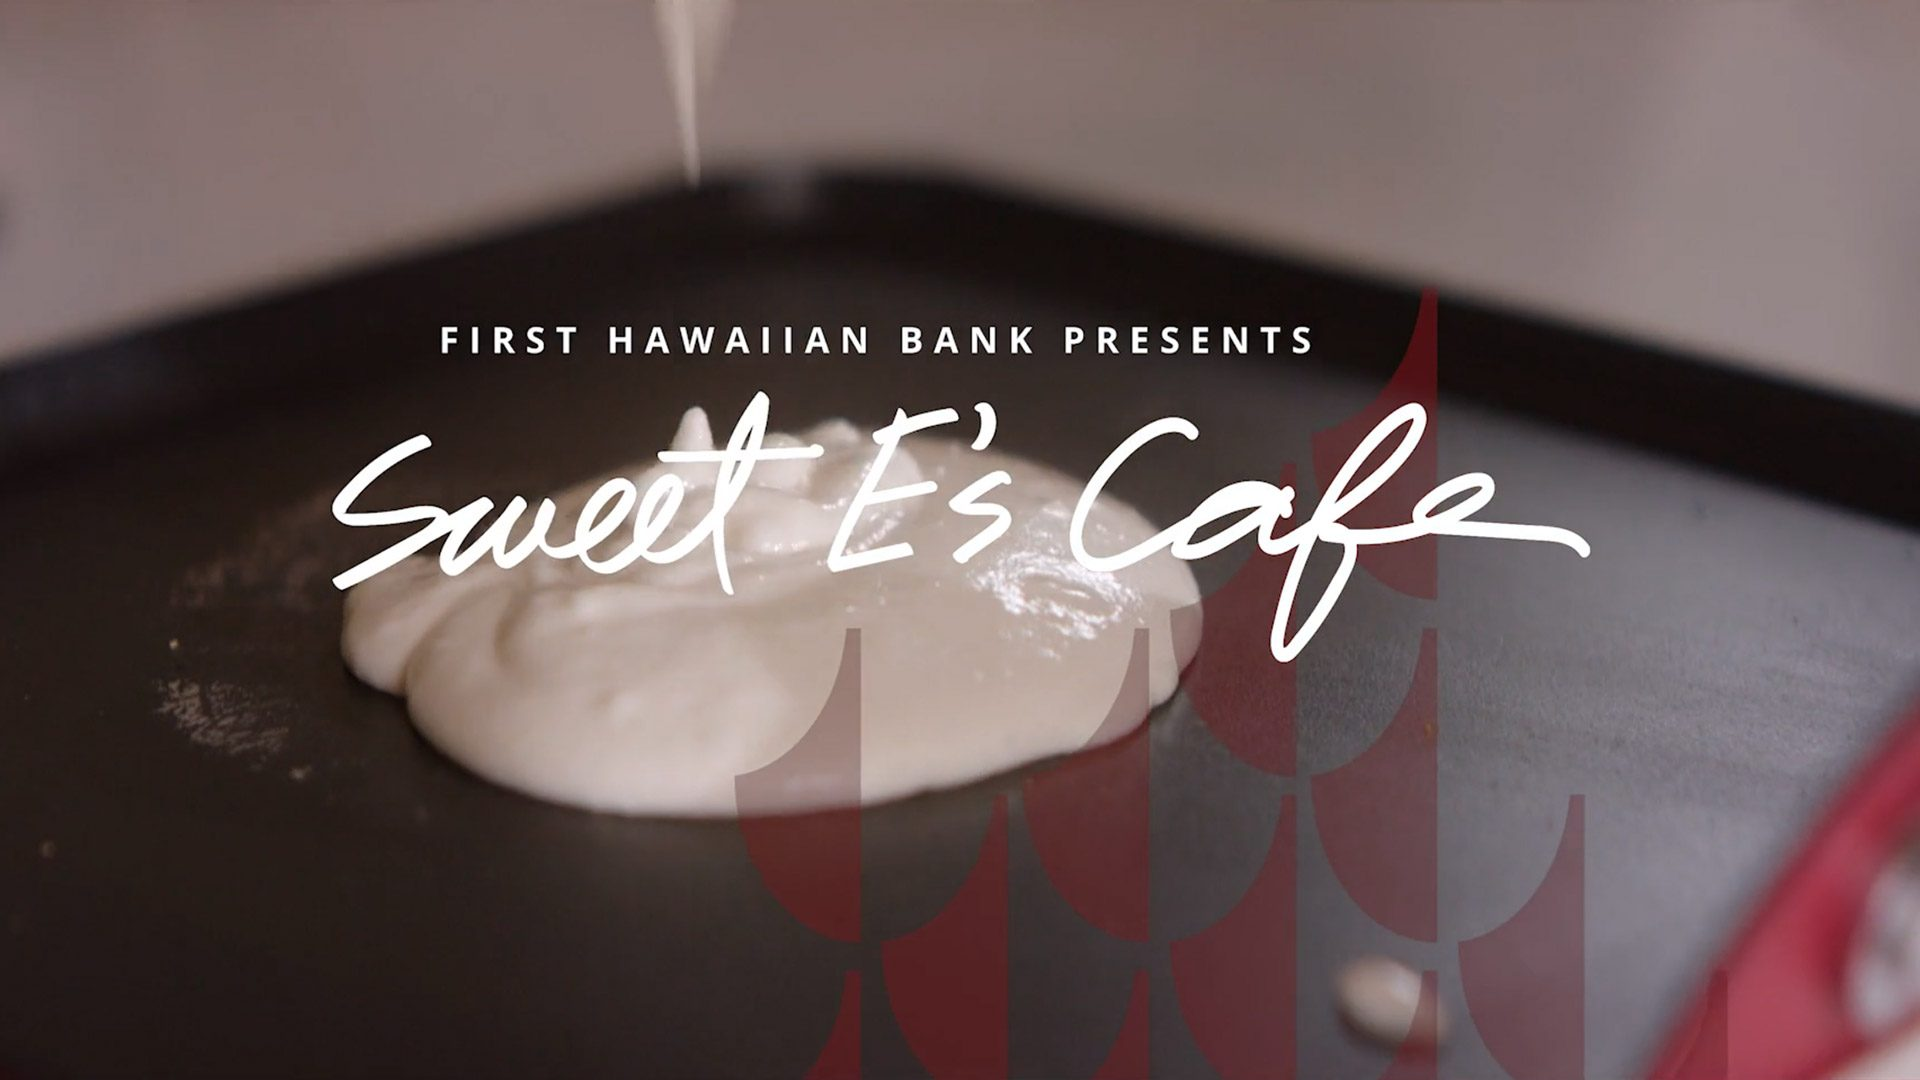 First Hawaiian Bank: Business Banking with Sweet E's (Full)